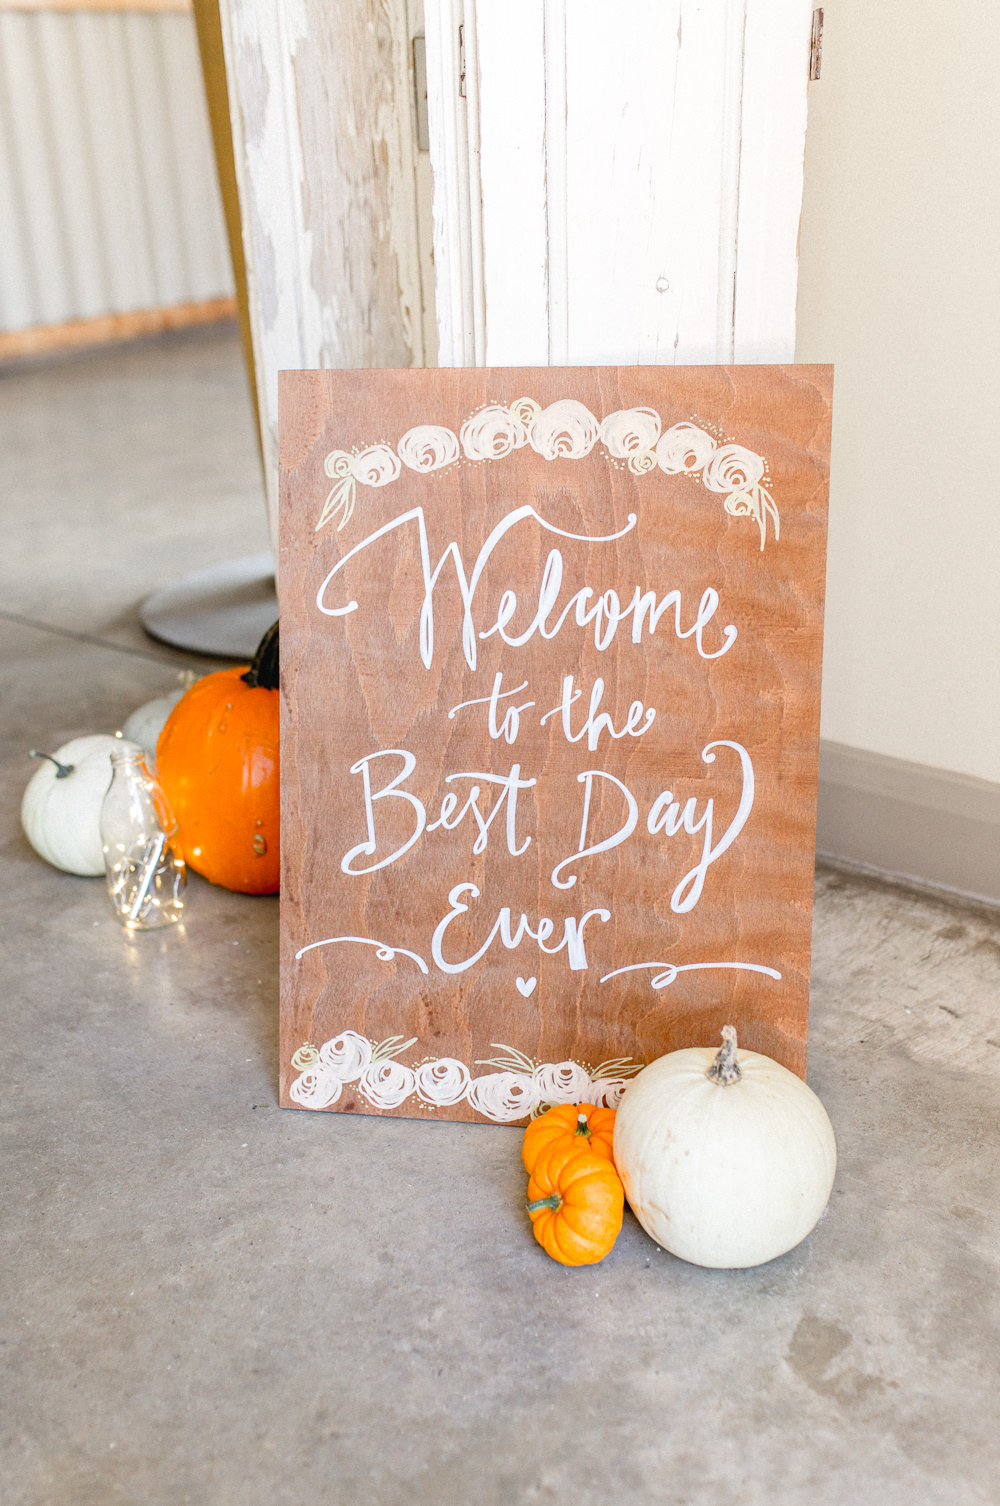 Floral Wooden Sign Signs Signage Calligraphy Pumpkins Autumnal Boho Wedding Ivory White Photography